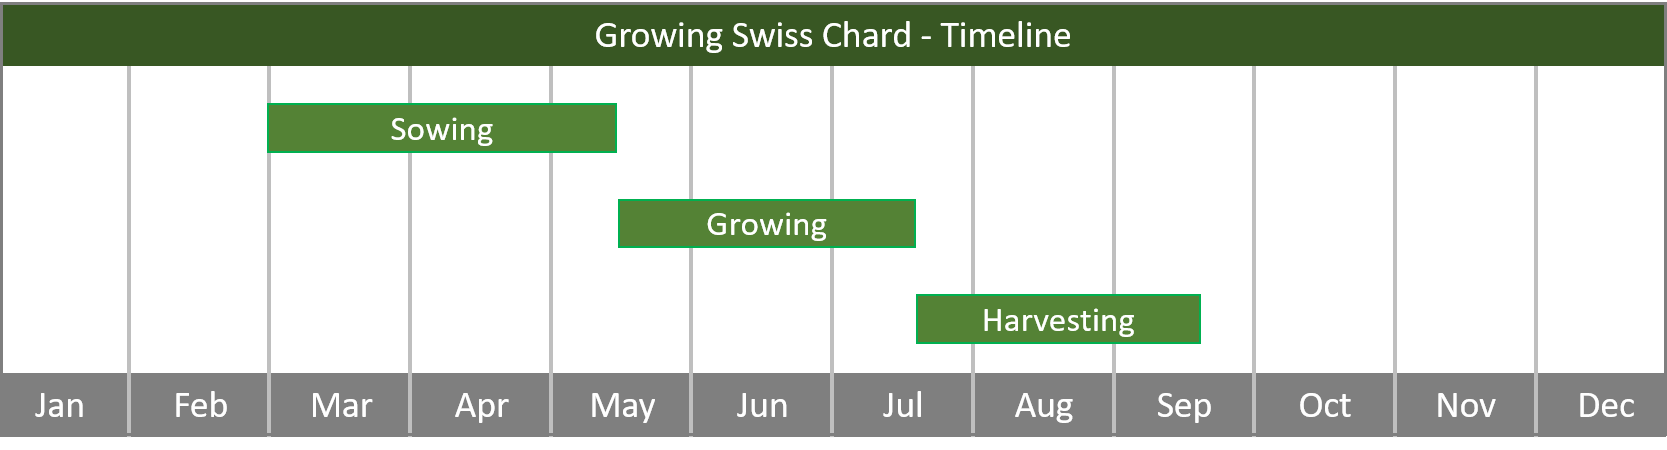 how to grow swiss chard from seed to harvest at home timeline